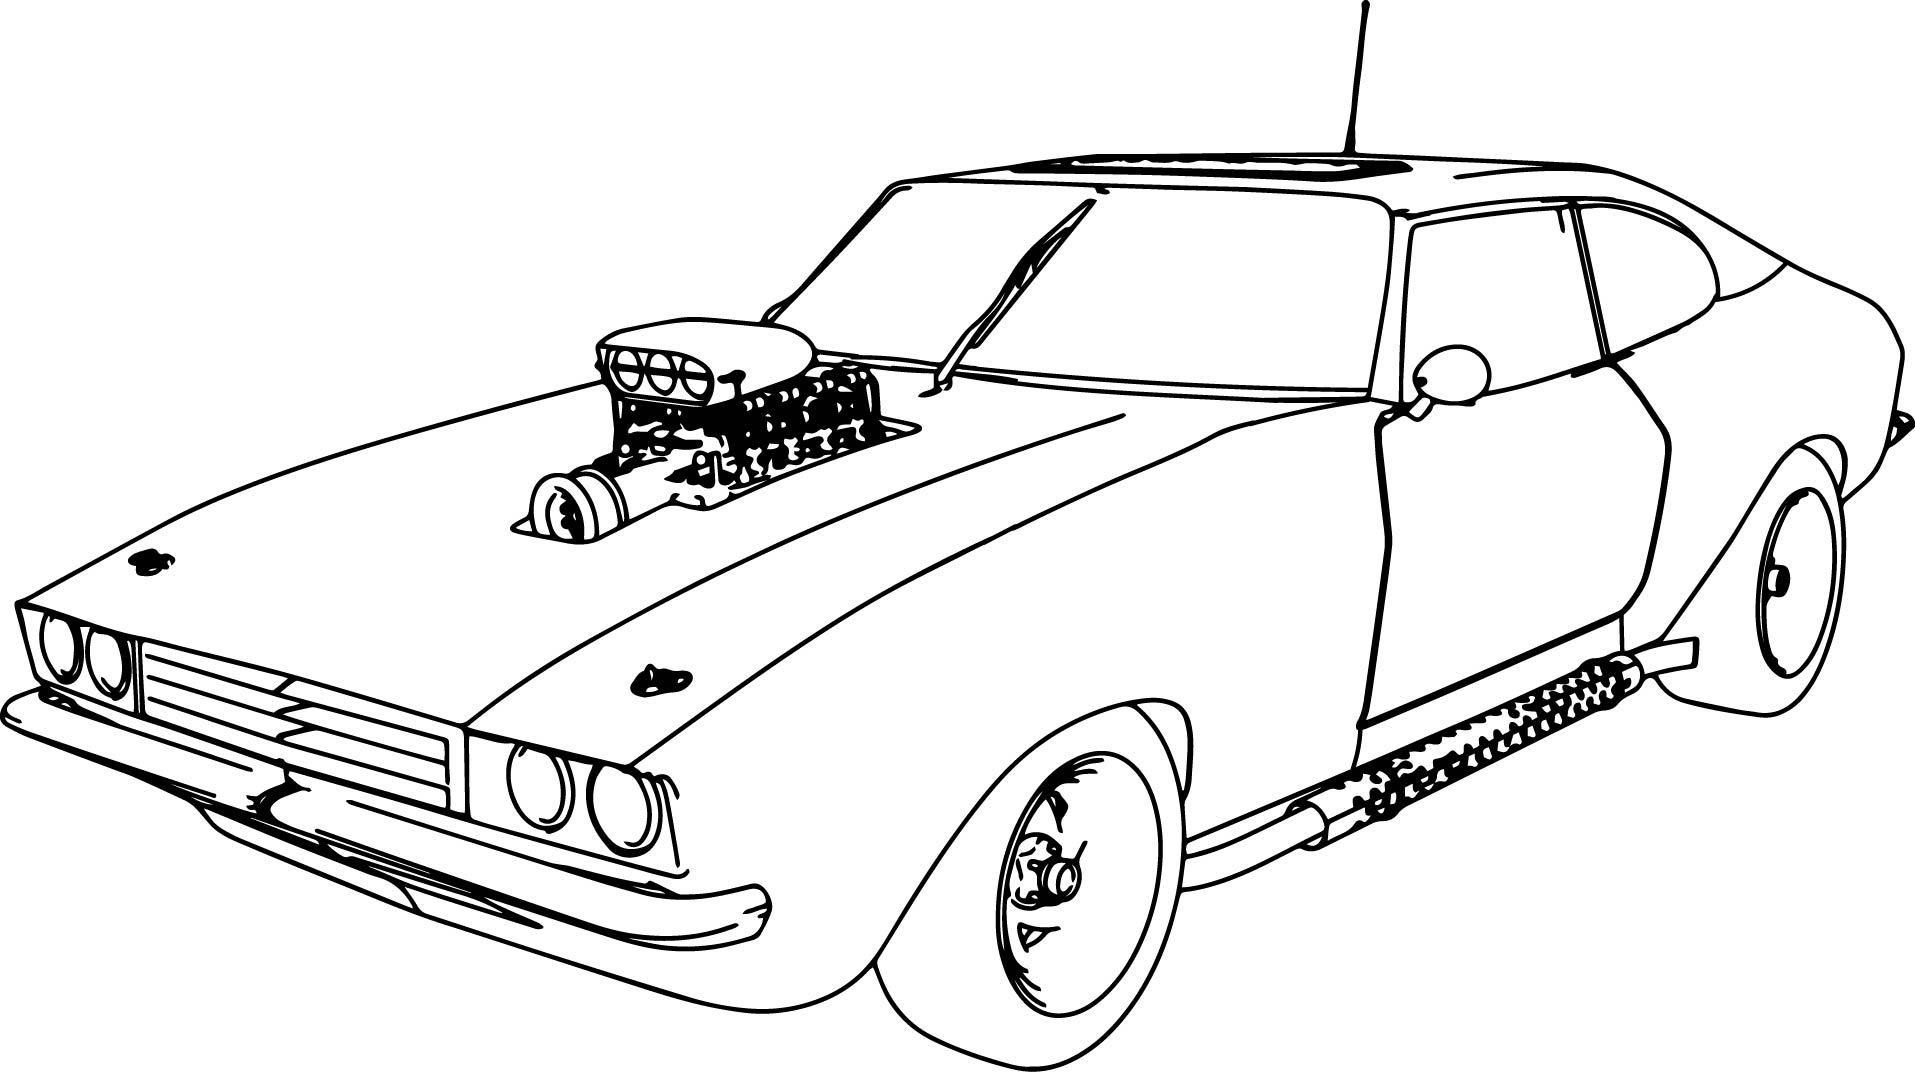 1915x1072 Muscle Car Coloring Pages Page Free Of Fast And Furious